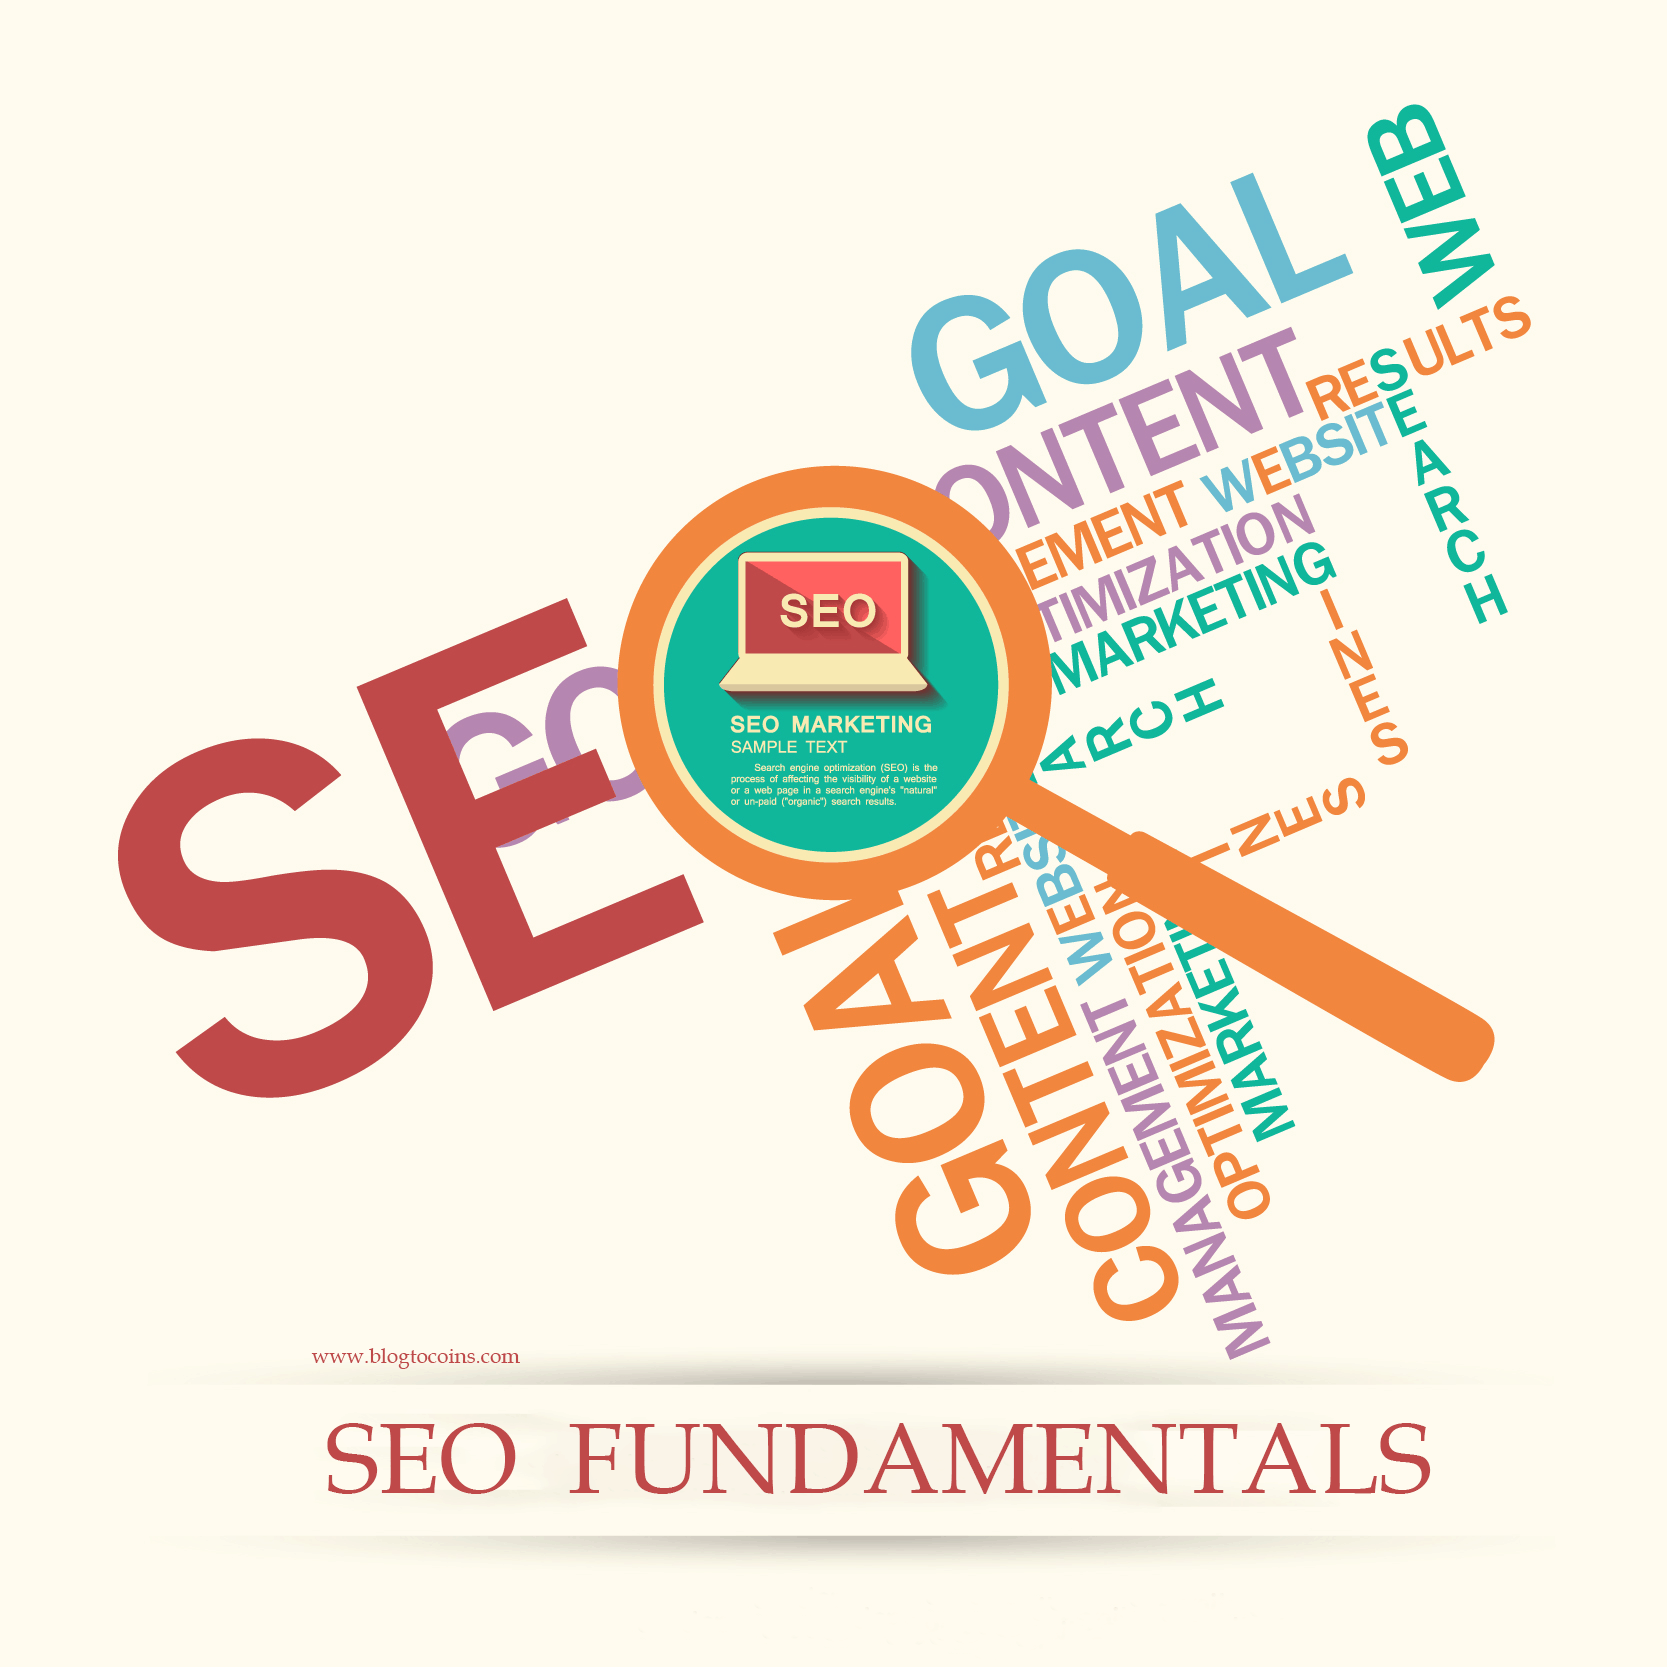 Fundamentals of SEO